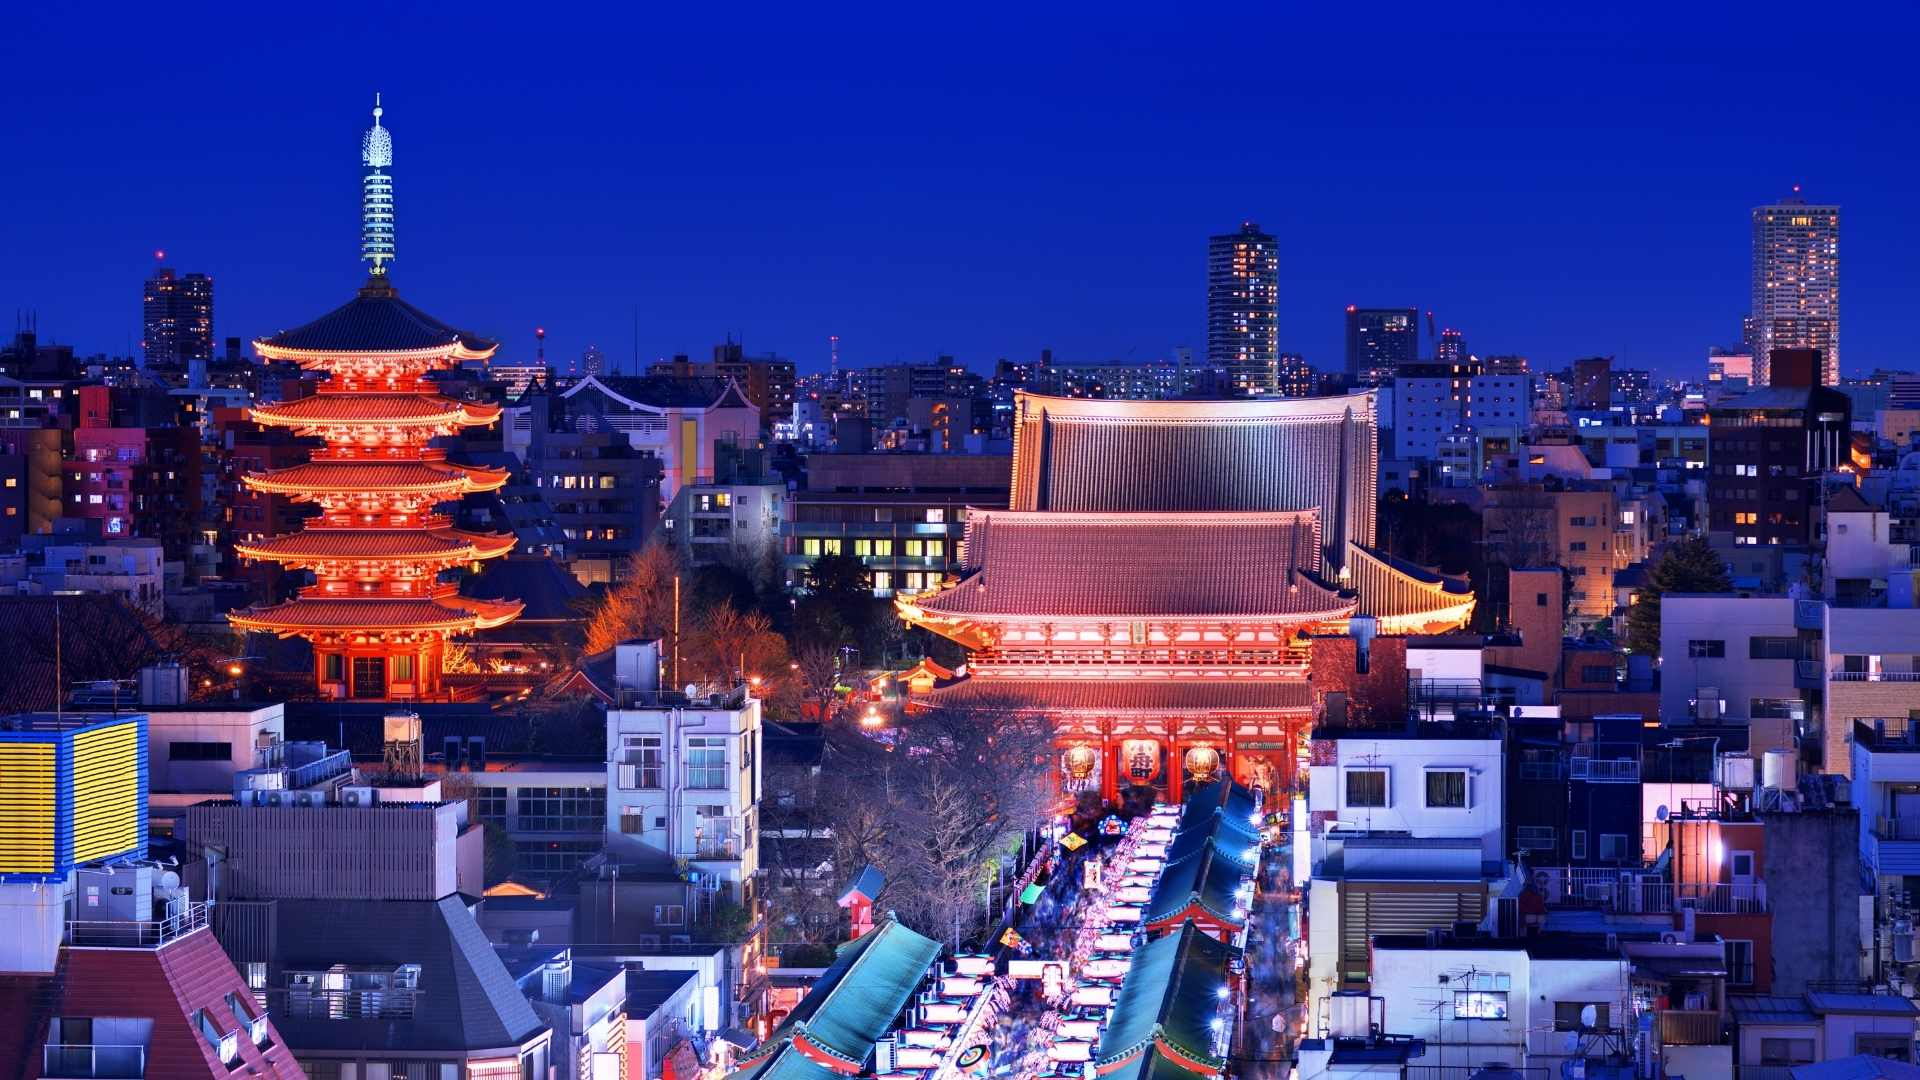 The unique nightlife in Traditional Asakusa